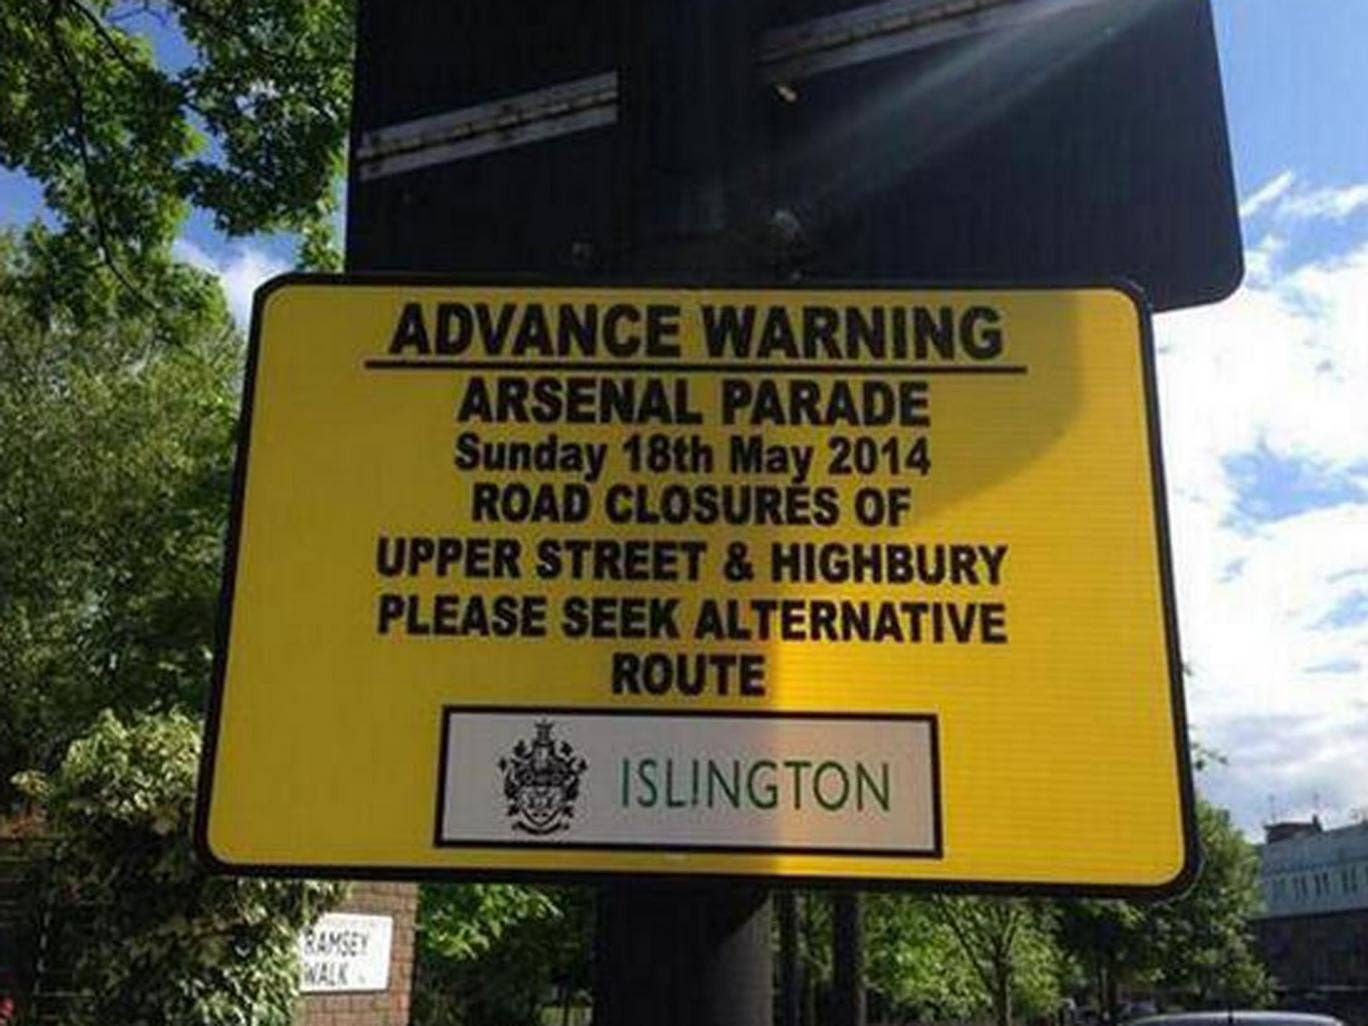 Arsenal's 'advance warning' of the parade